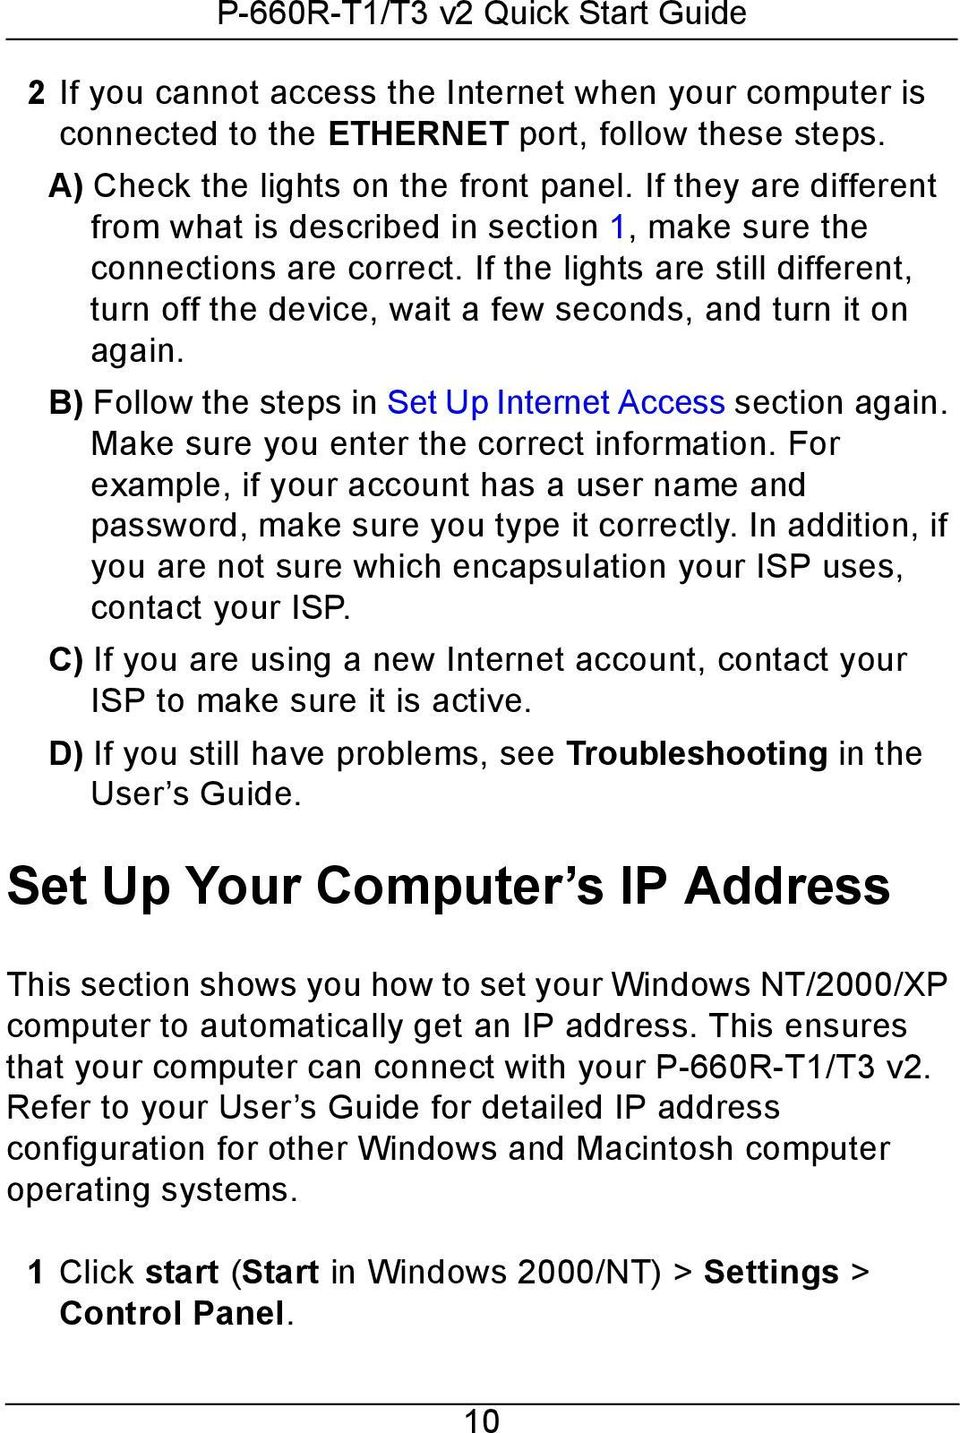 B) Follow the steps in Set Up Internet Access section again. Make sure you enter the correct information. For example, if your account has a user name and password, make sure you type it correctly.